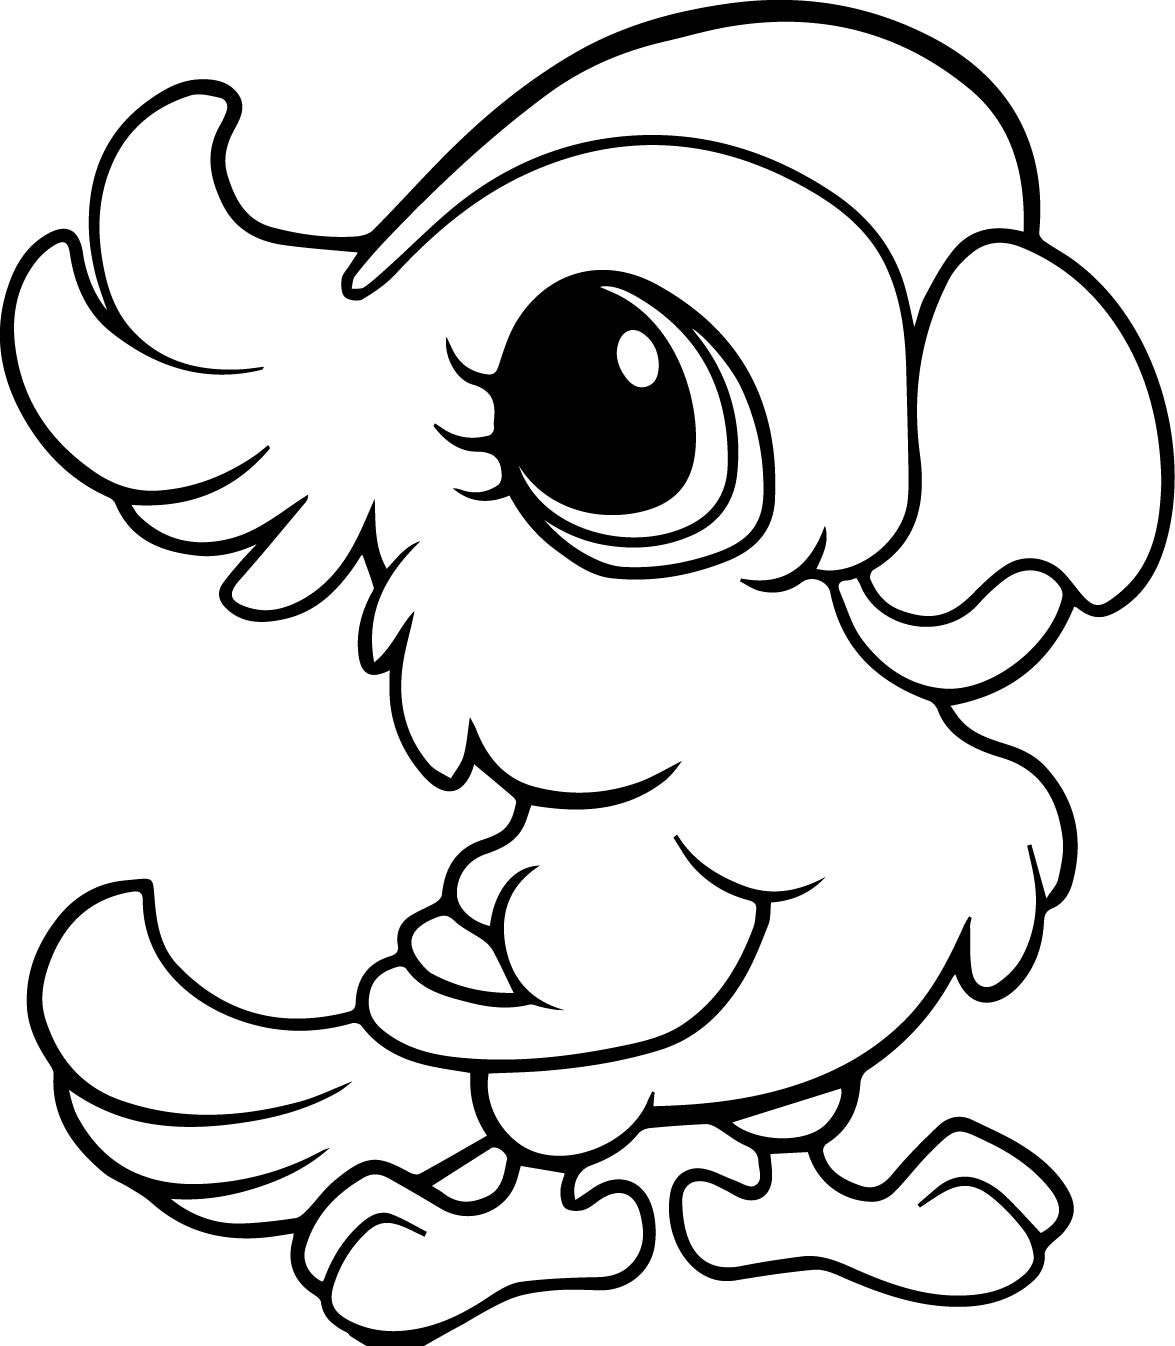 Free Baby Animal Coloring Pages Download 1g - To print for your project